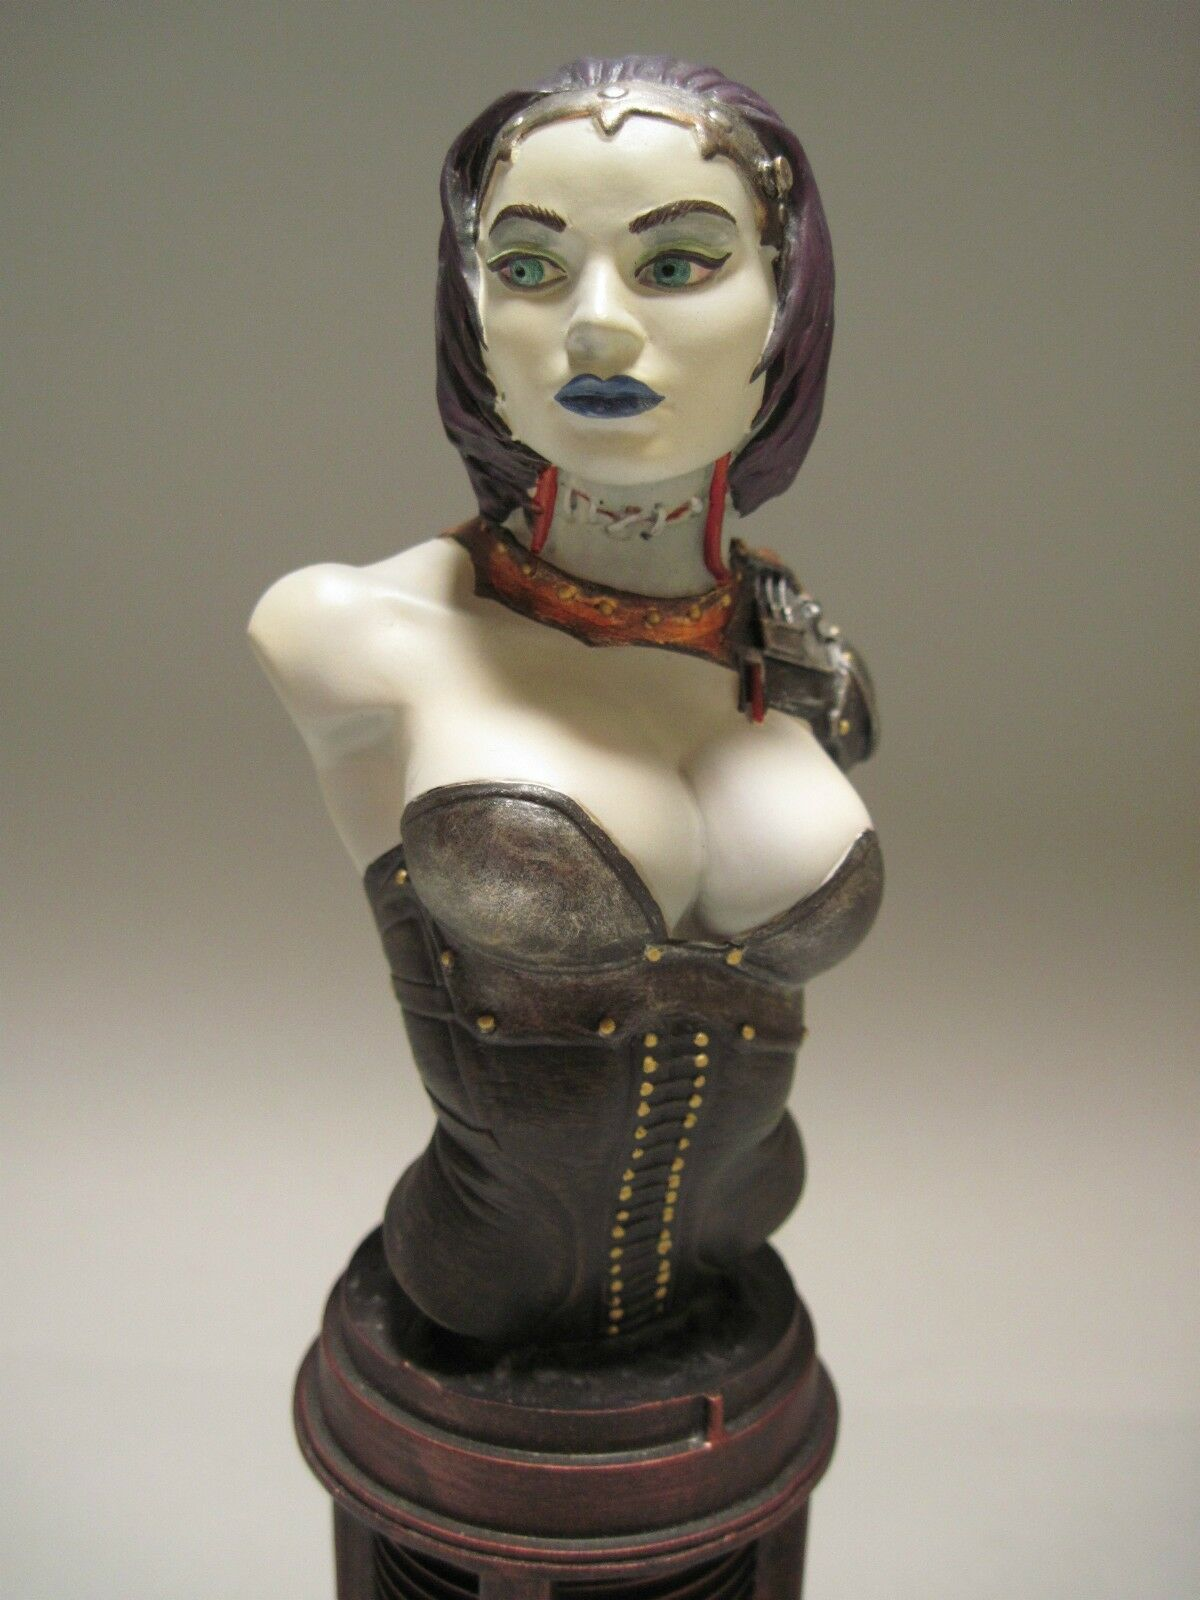 The Bride Cabinet of Curiosities William Paquet Bust (ARTIST PROOF)